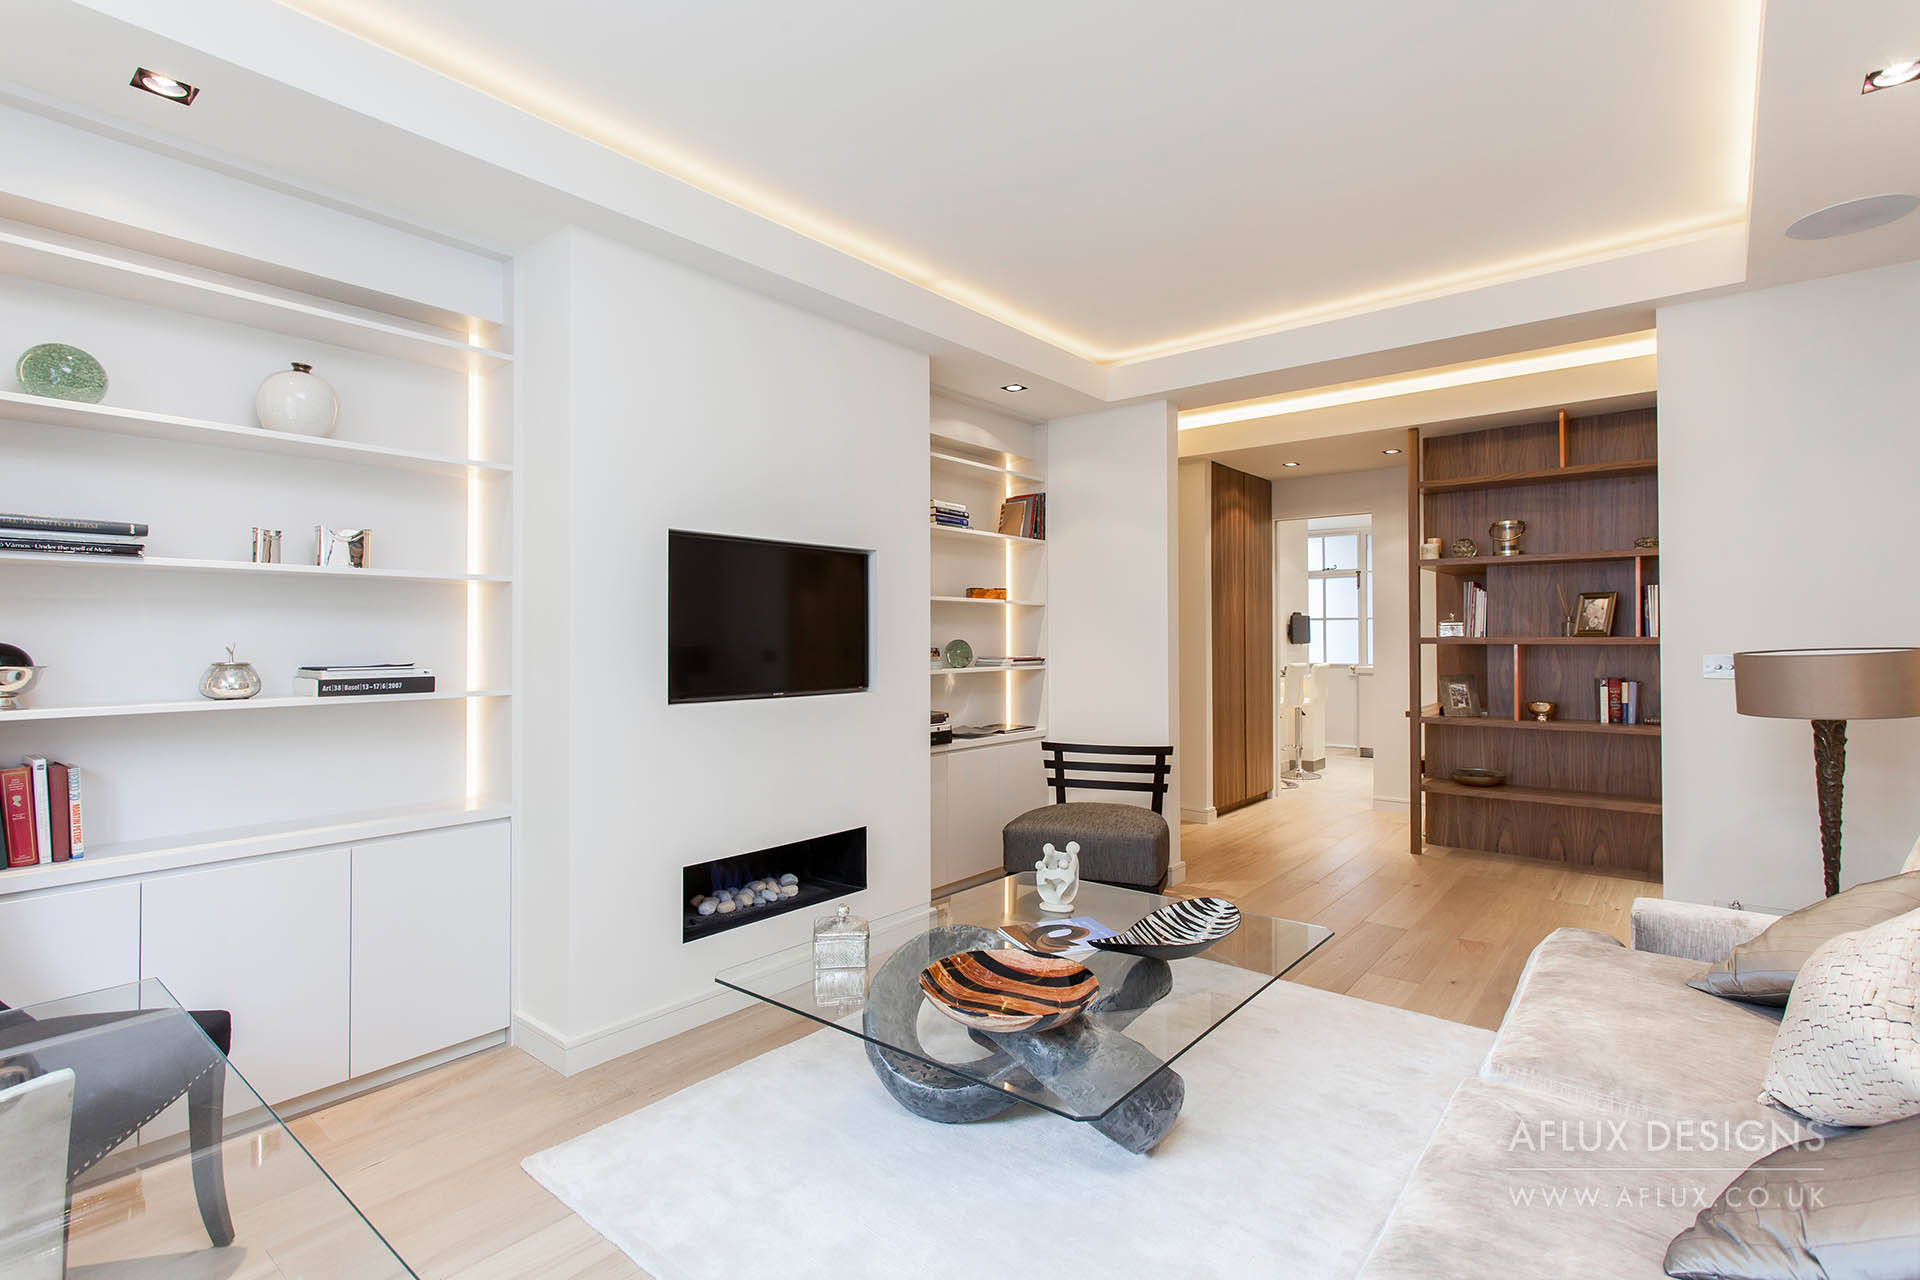 Portland Place - LONDON W1BA ground floor flat in a portered building in Marleybone which had not been touched for over thirty years turned into a bright and spacious two bed, two bath pied a terre. Low ceilings allowed for recessed lighting and bespoke joinery throughout maximised storage.